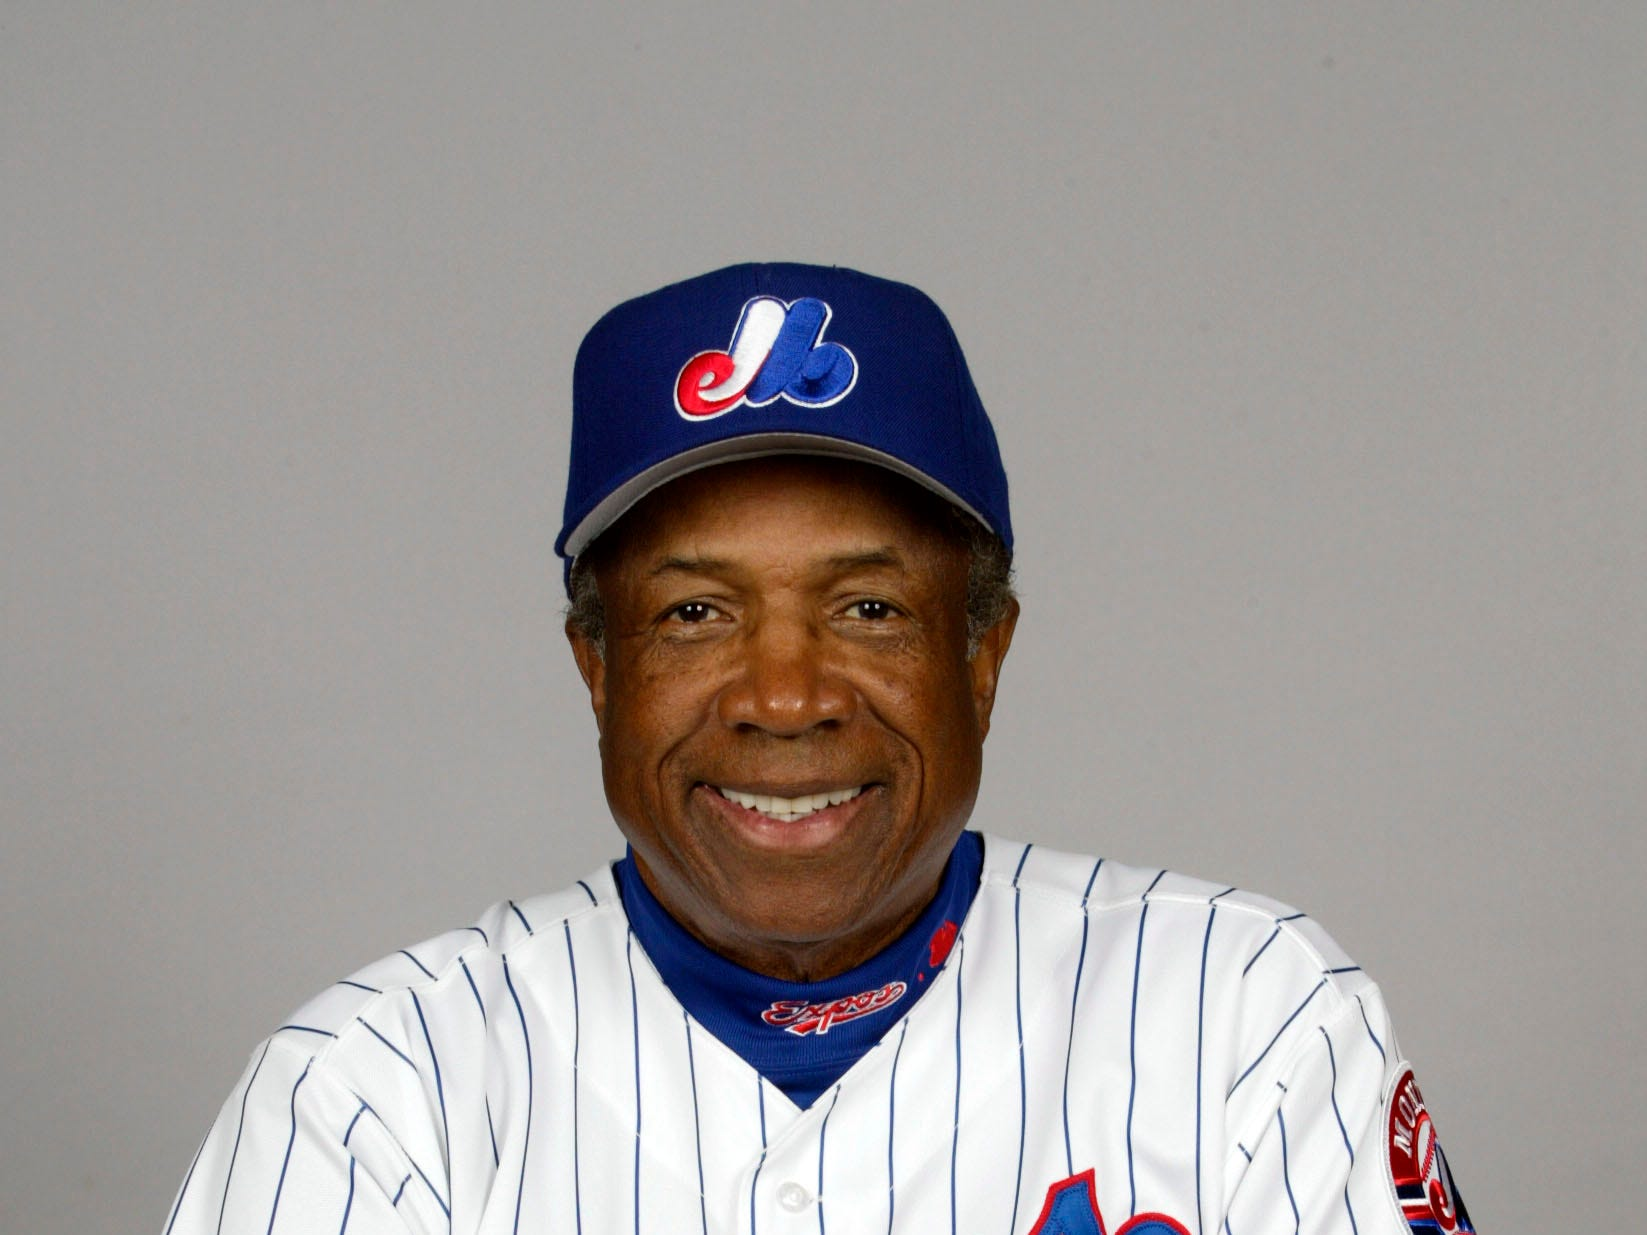 Frank Robinson managed the Montreal Expos from 2002-2004 before the franchise moved to Washington.